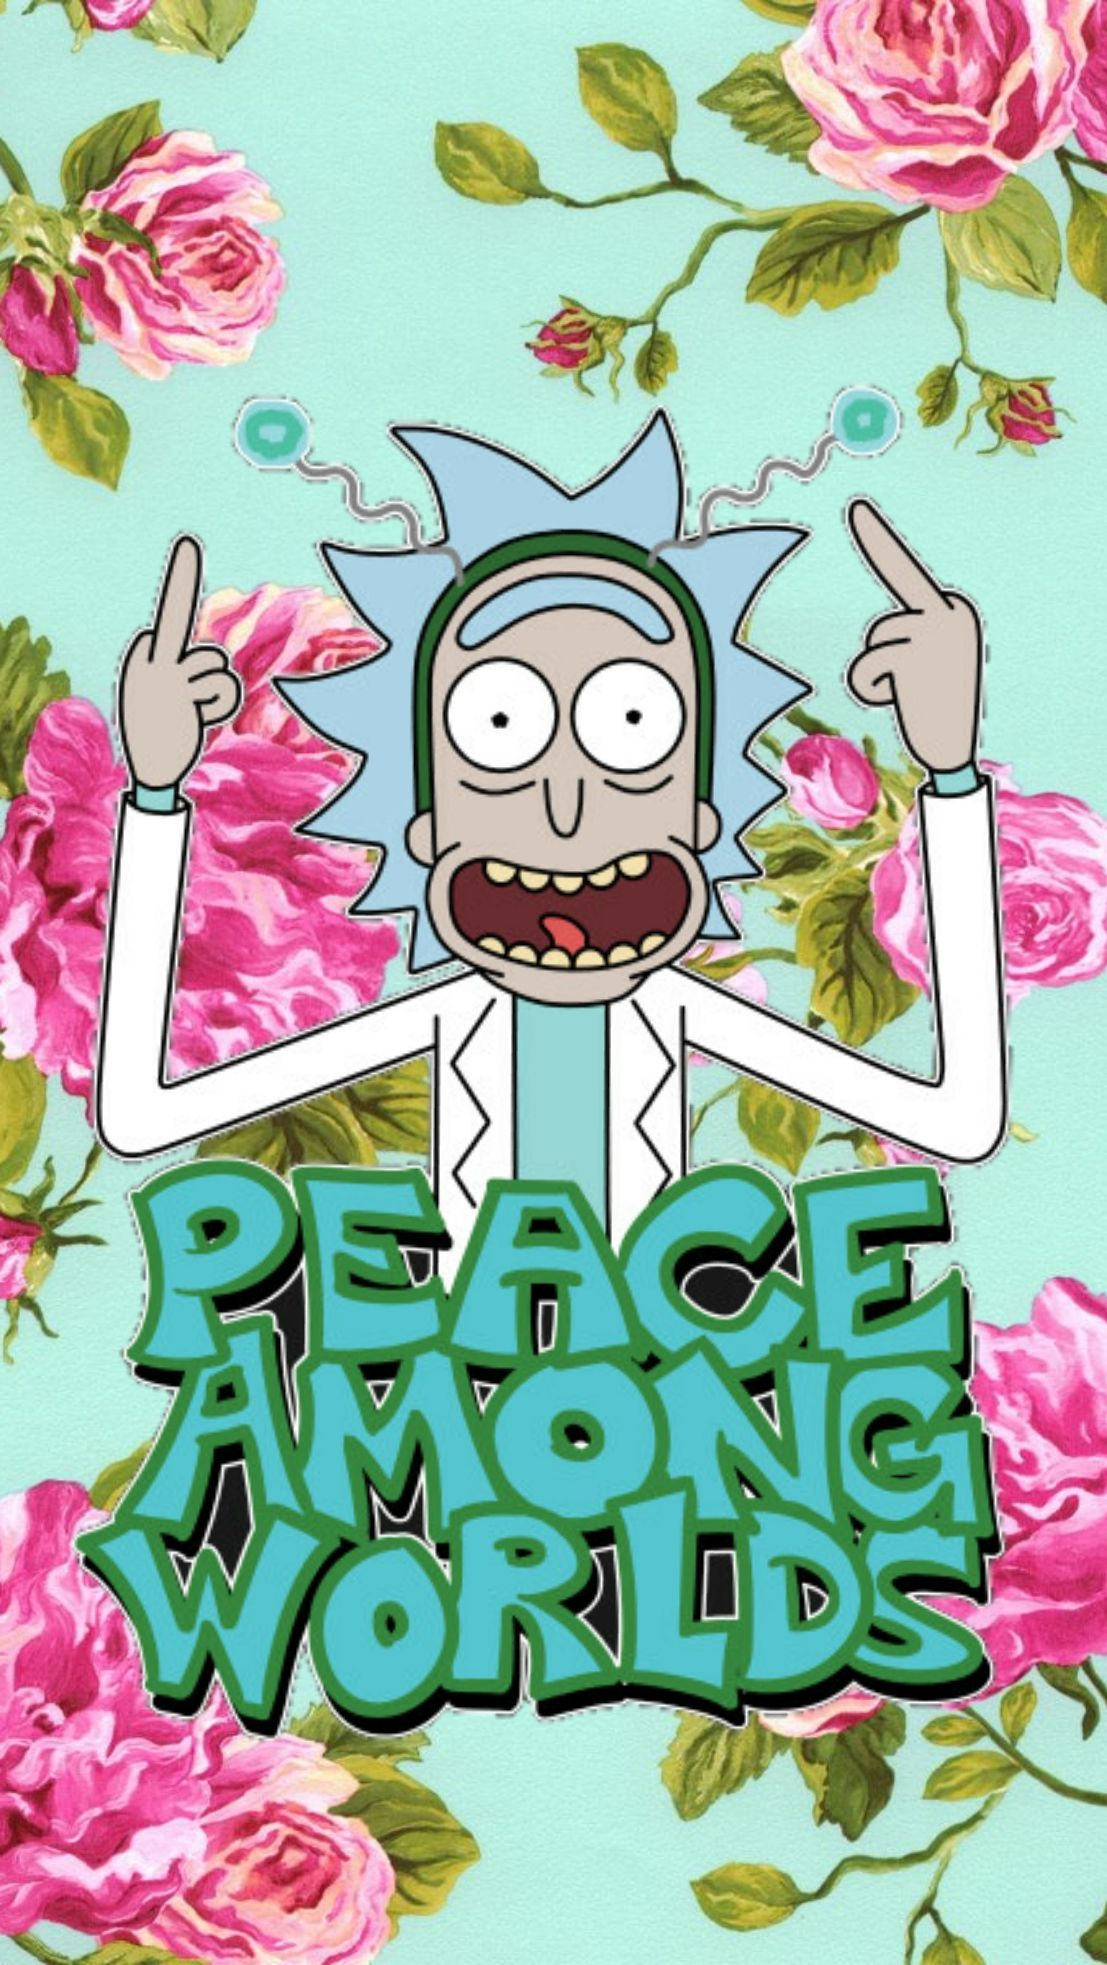 Peace Among Worlds Rick And Morty Wallpaper Album On Imgur In The